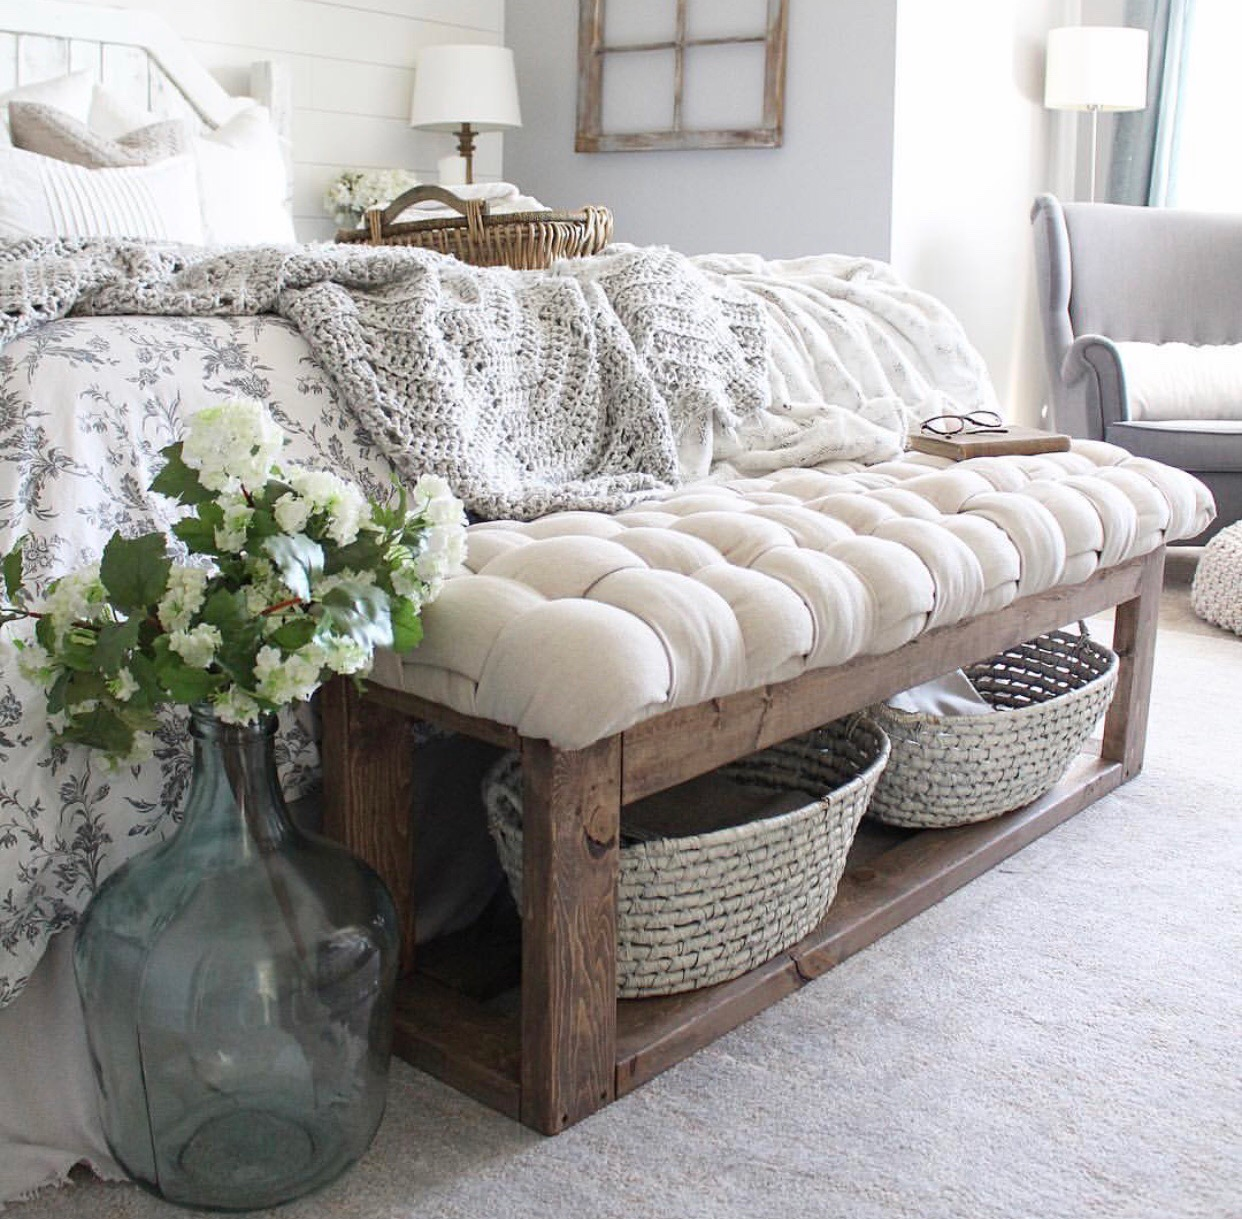 DIY Basket Weave Bench